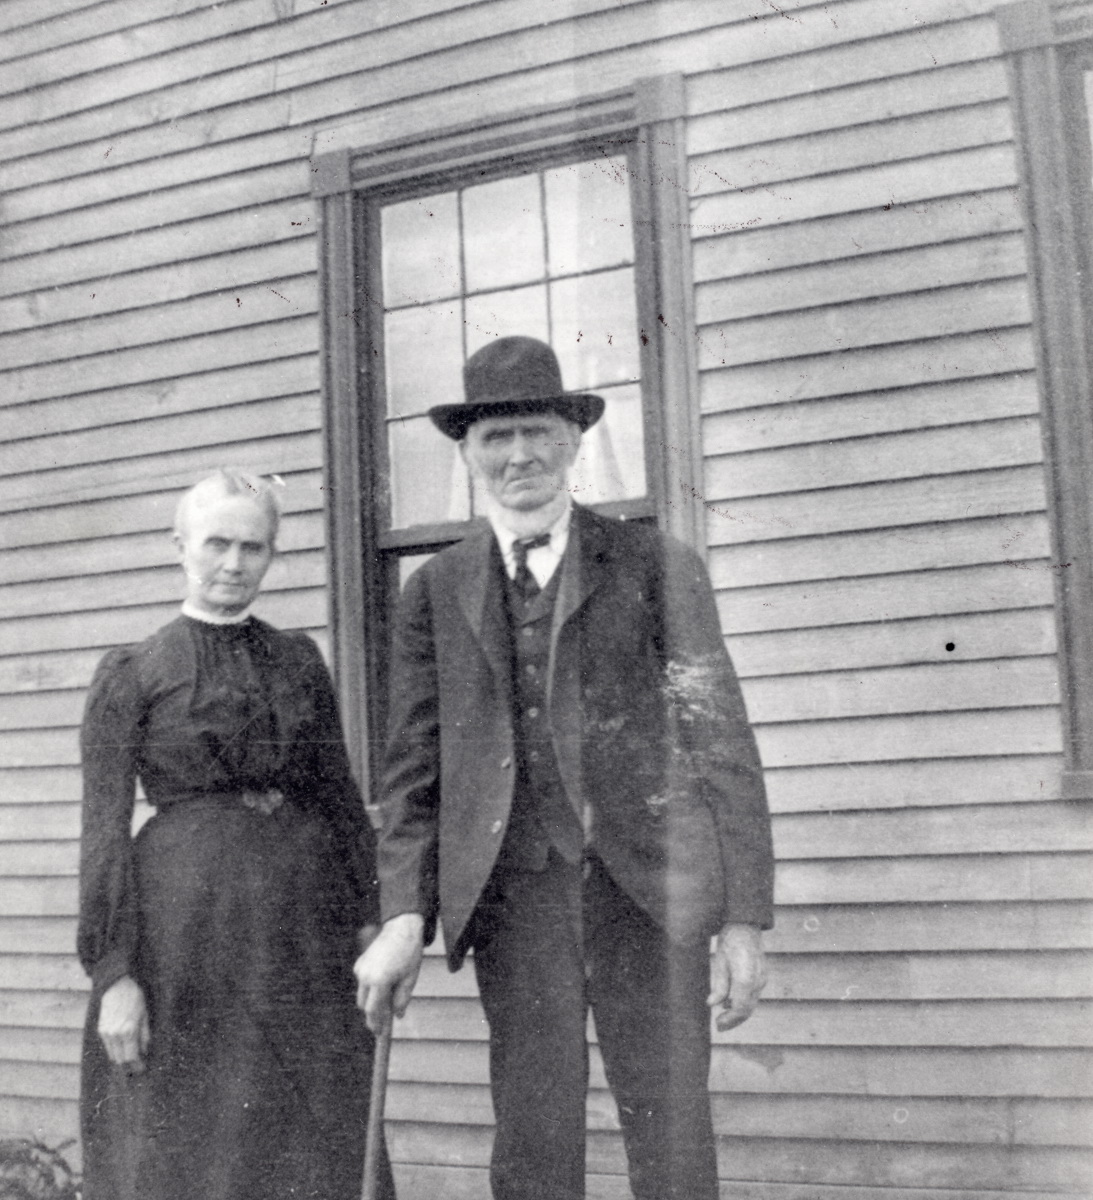 Rebecca (Whitmore) Lurvey Carroll, Mrs. Jacob William Carroll, and her father, Isaac Stanley Whitmore